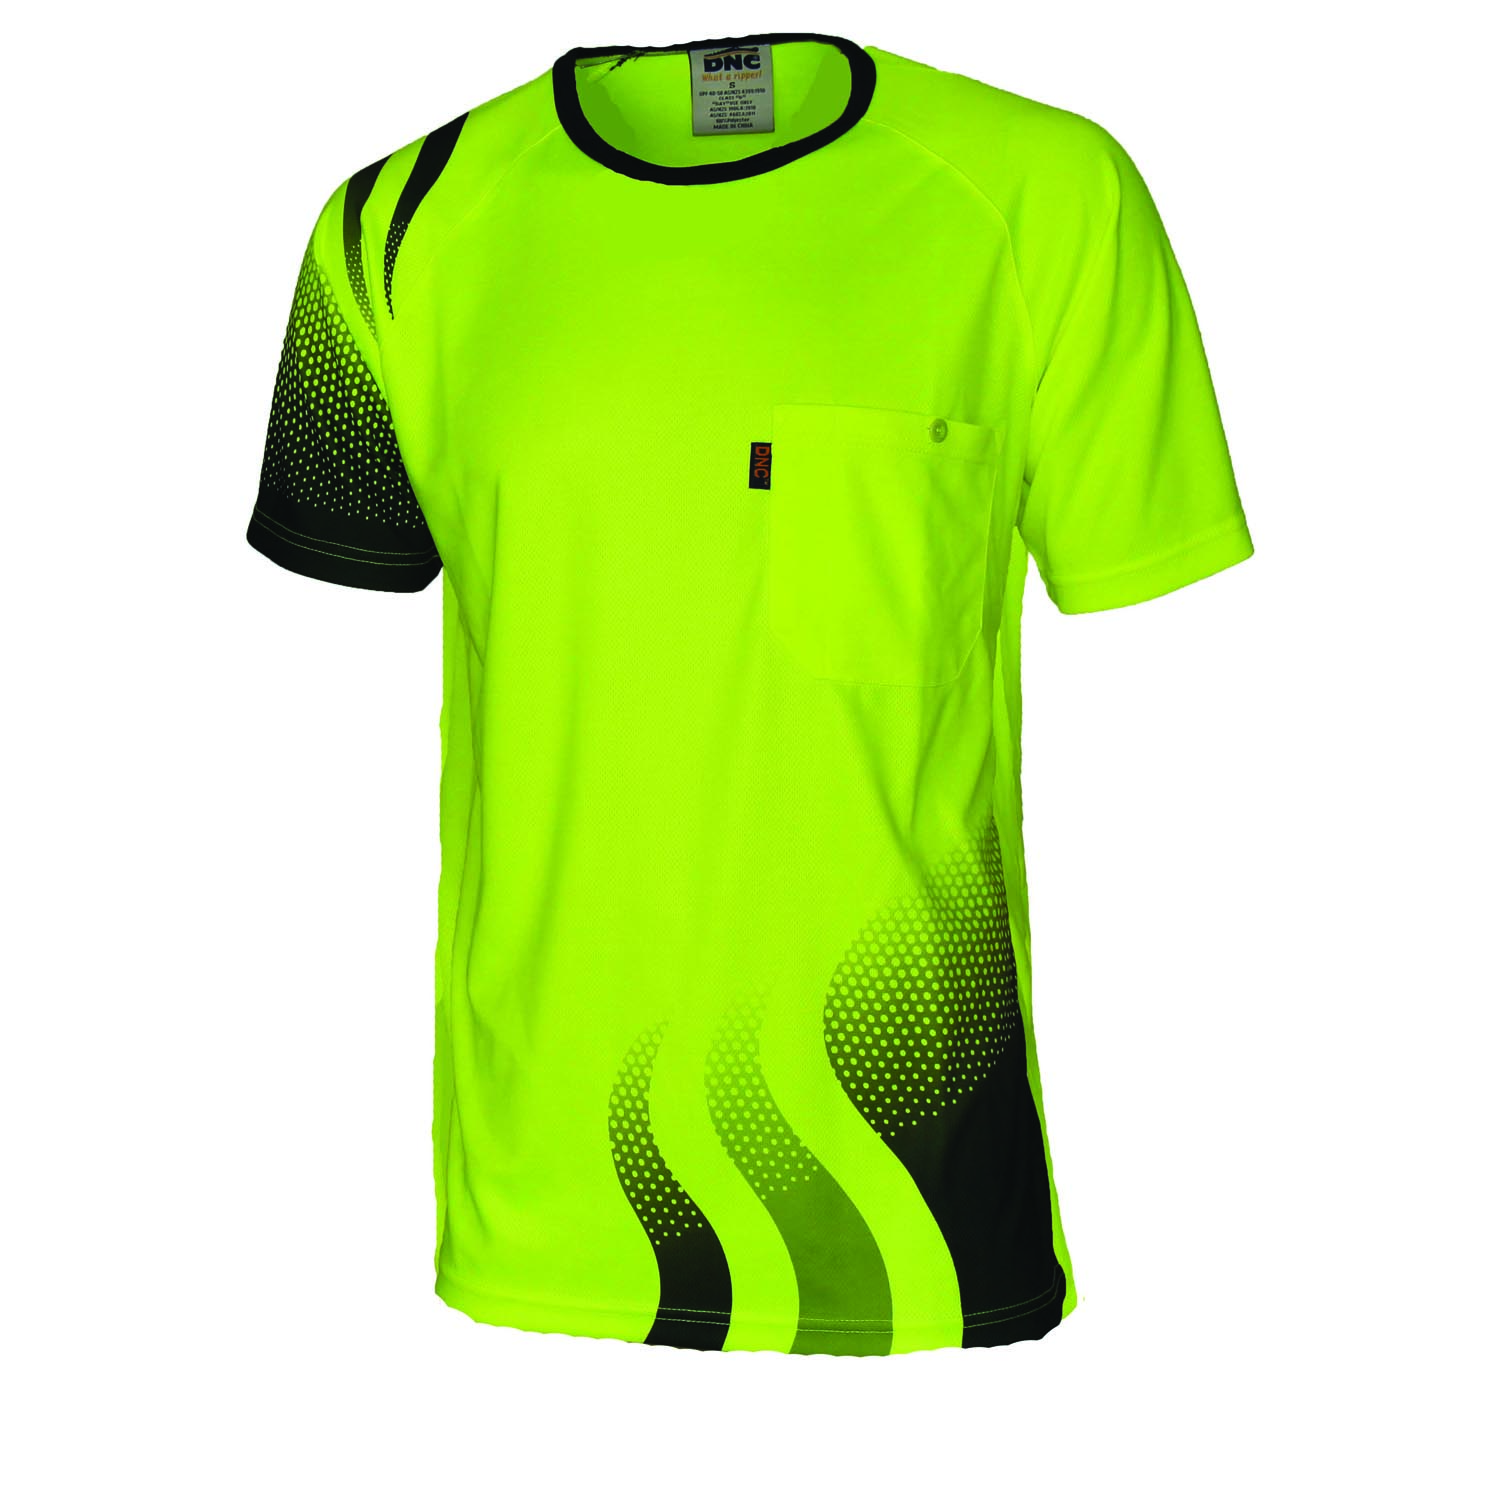 Product display dnc workwear workwear work wear for High visibility safety t shirts